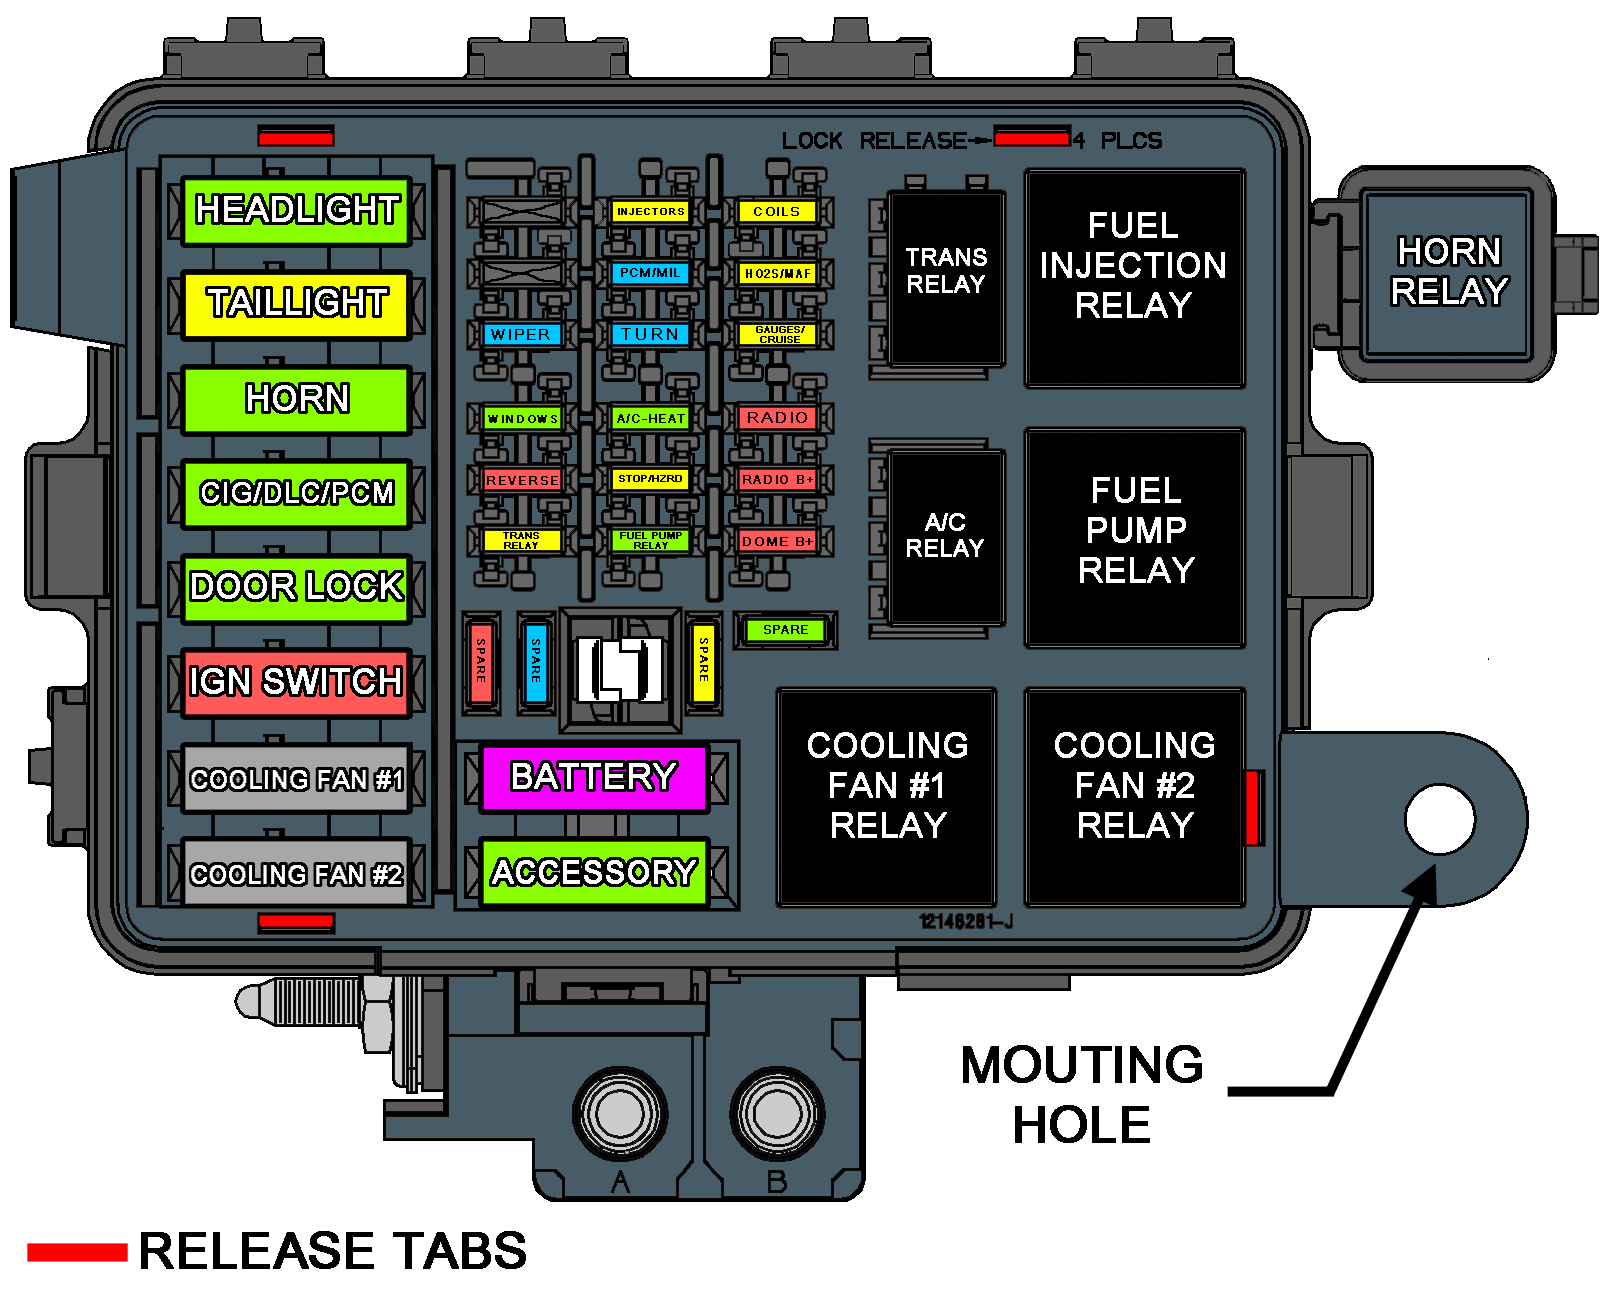 Wire Harness Installation Manual Part Pdf Fuse Box Mount Mounting The Block 26 7 Relay Is Center Point